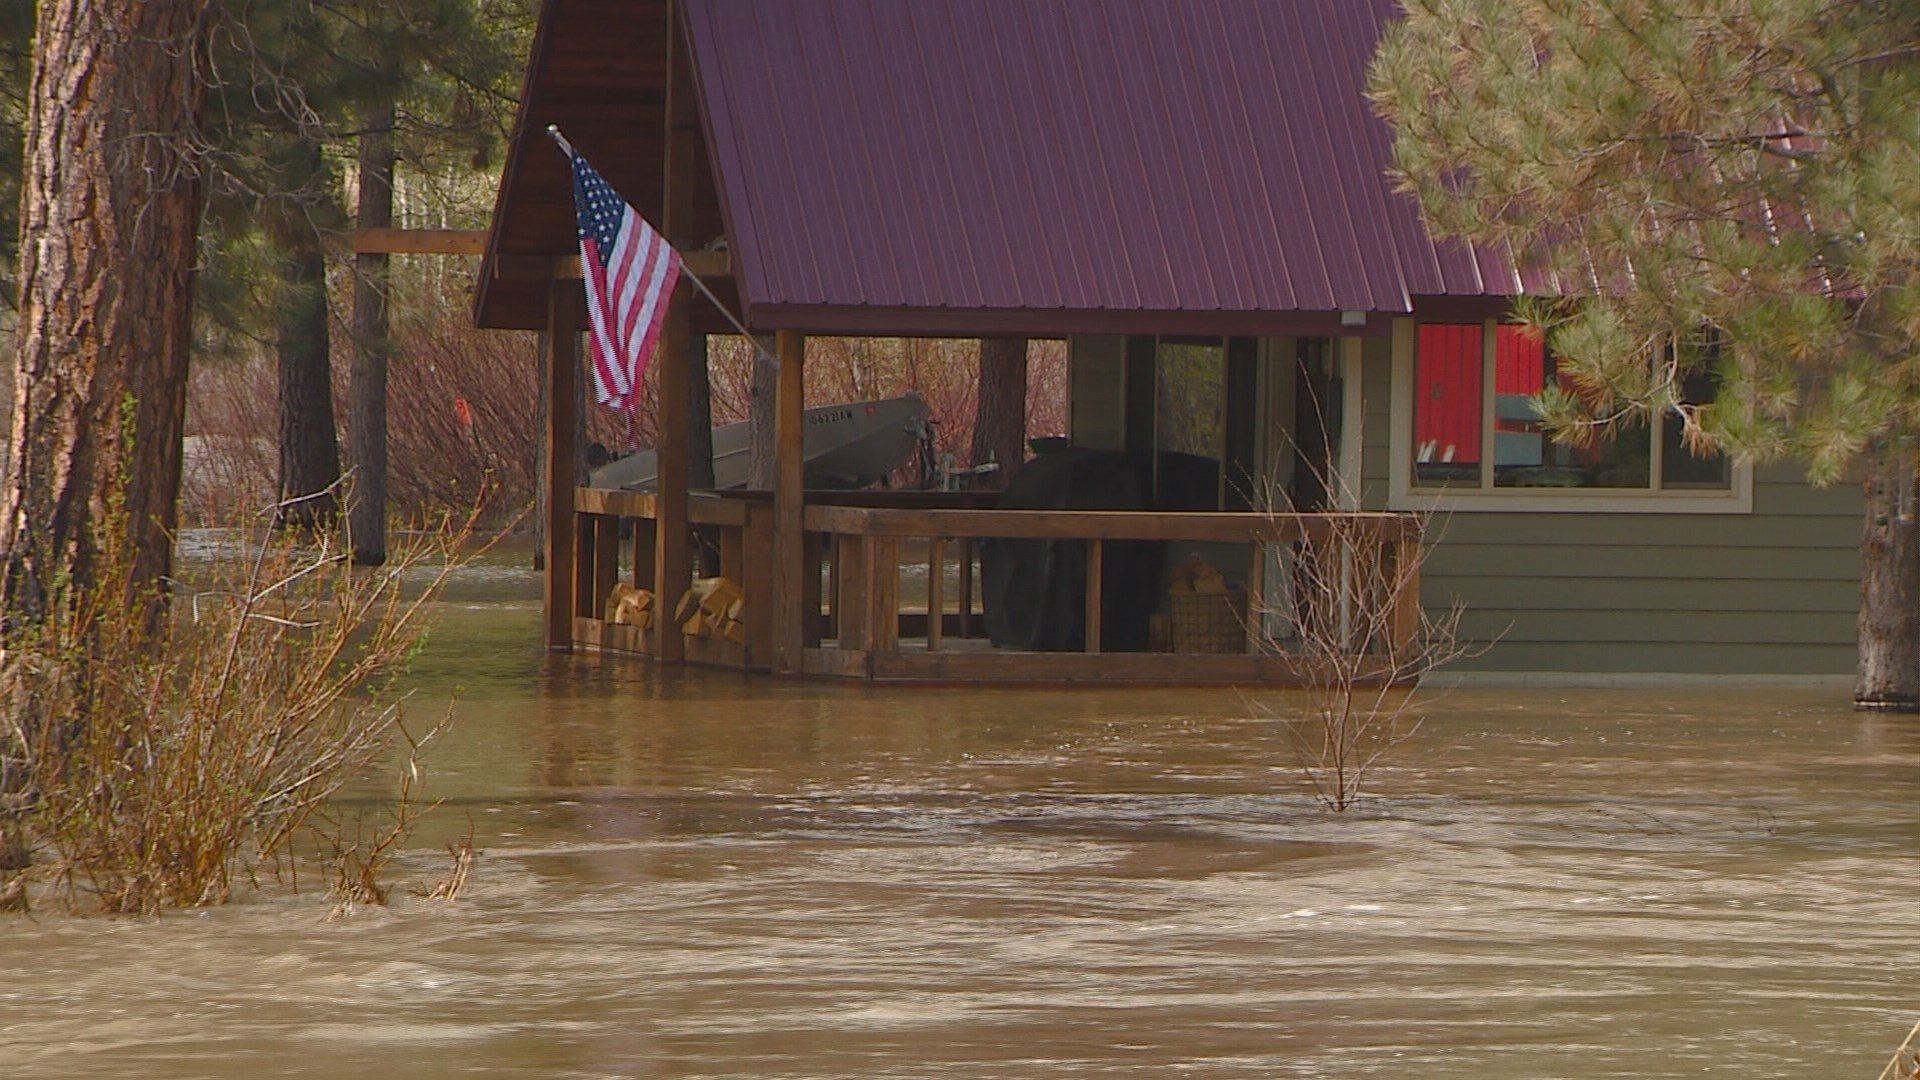 Homes And Campsites In Elmore County Evacuated Due To Flooding